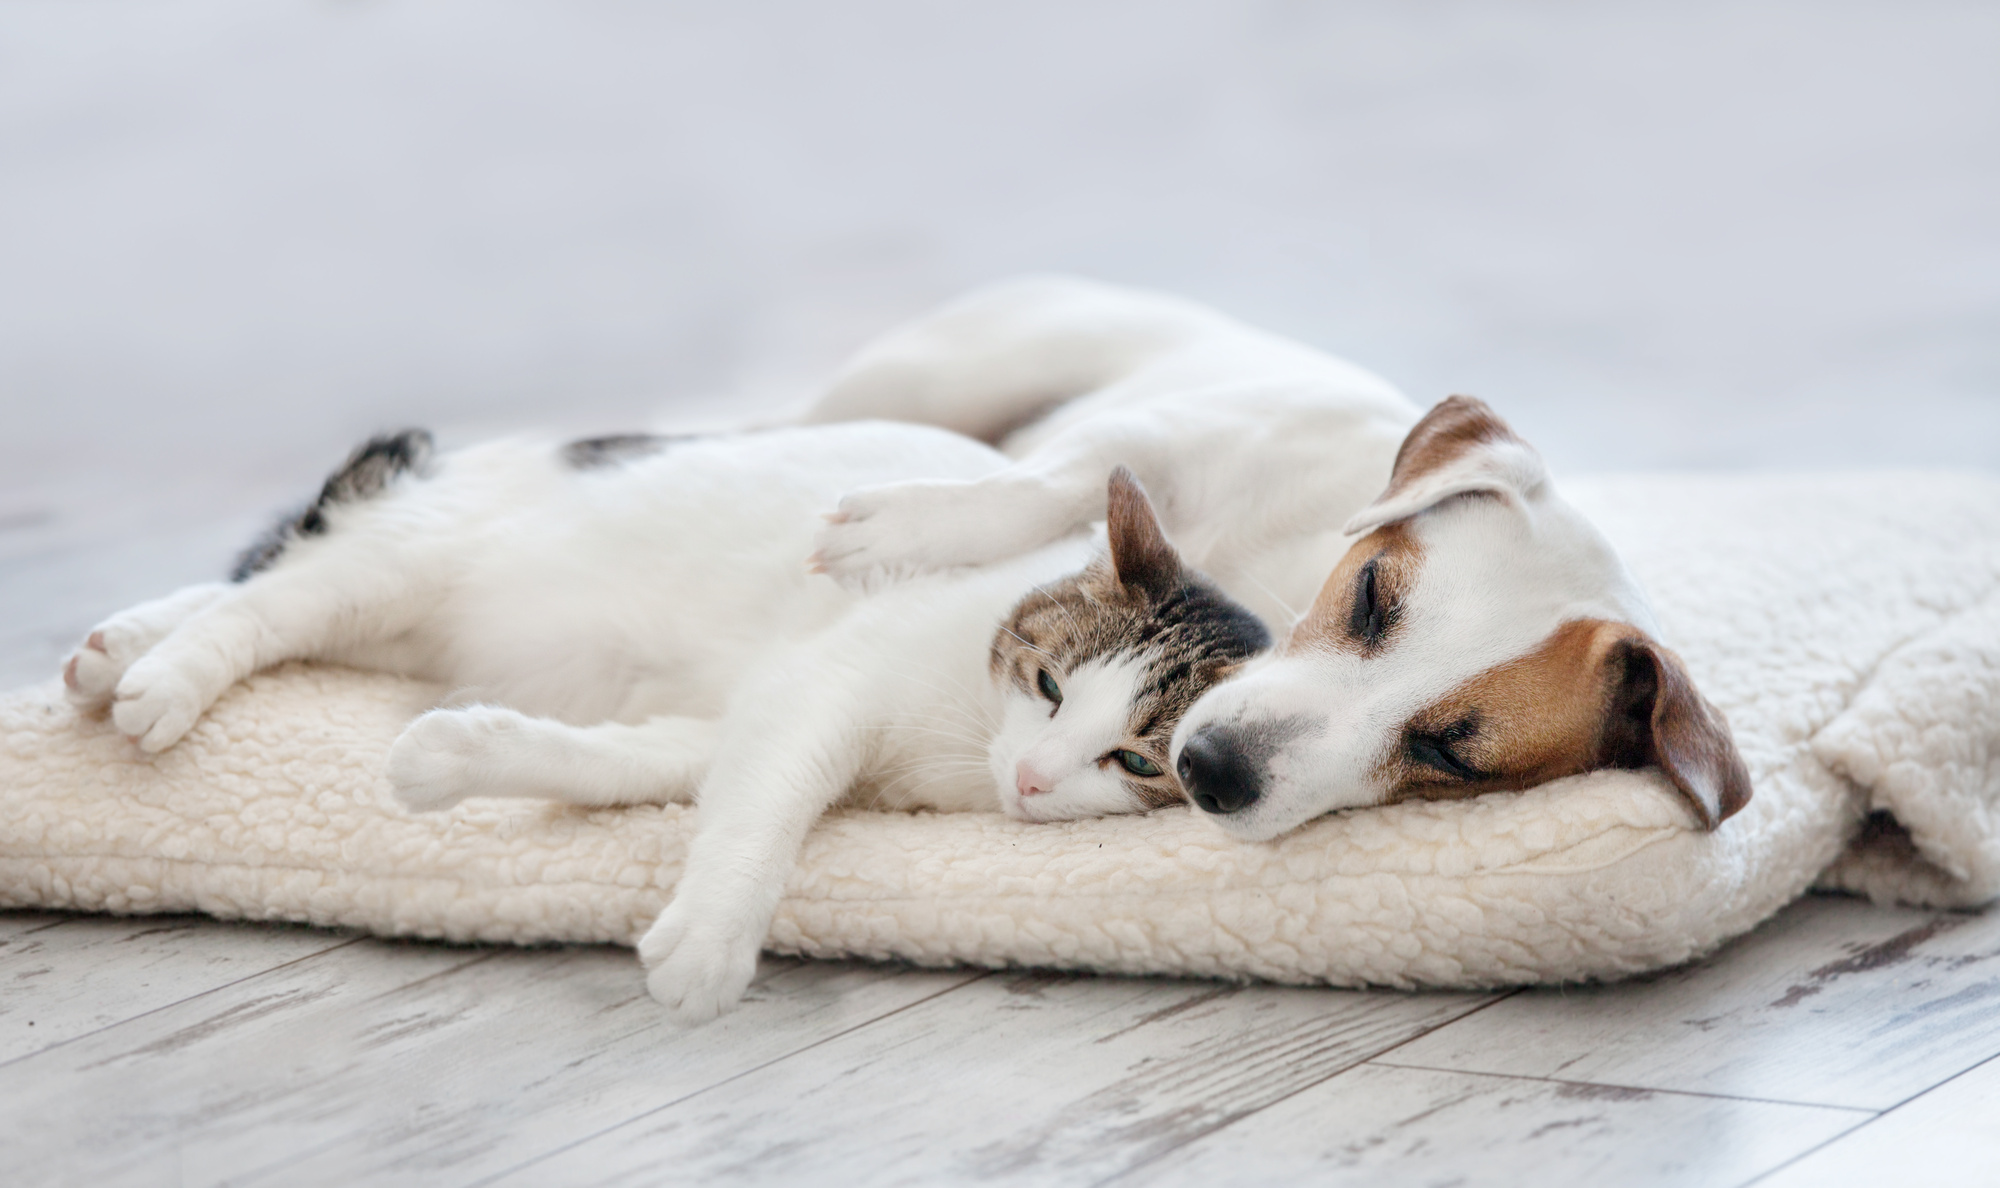 Pesky Pets: How to Make Cats and Dogs Get Along